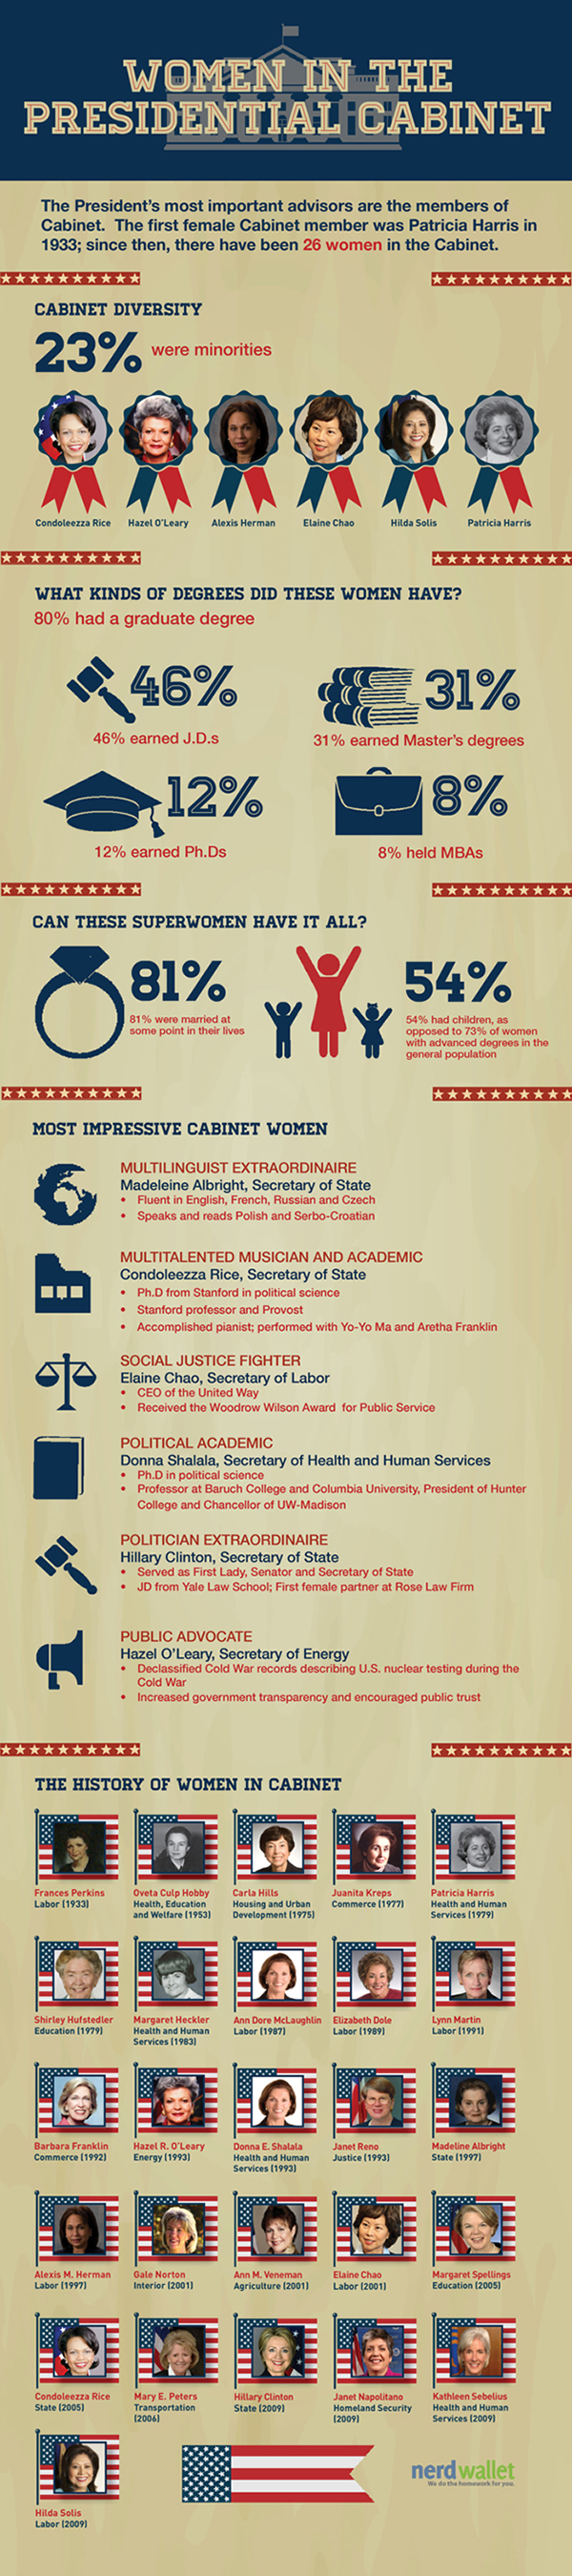 Women in the Presidential Cabinet